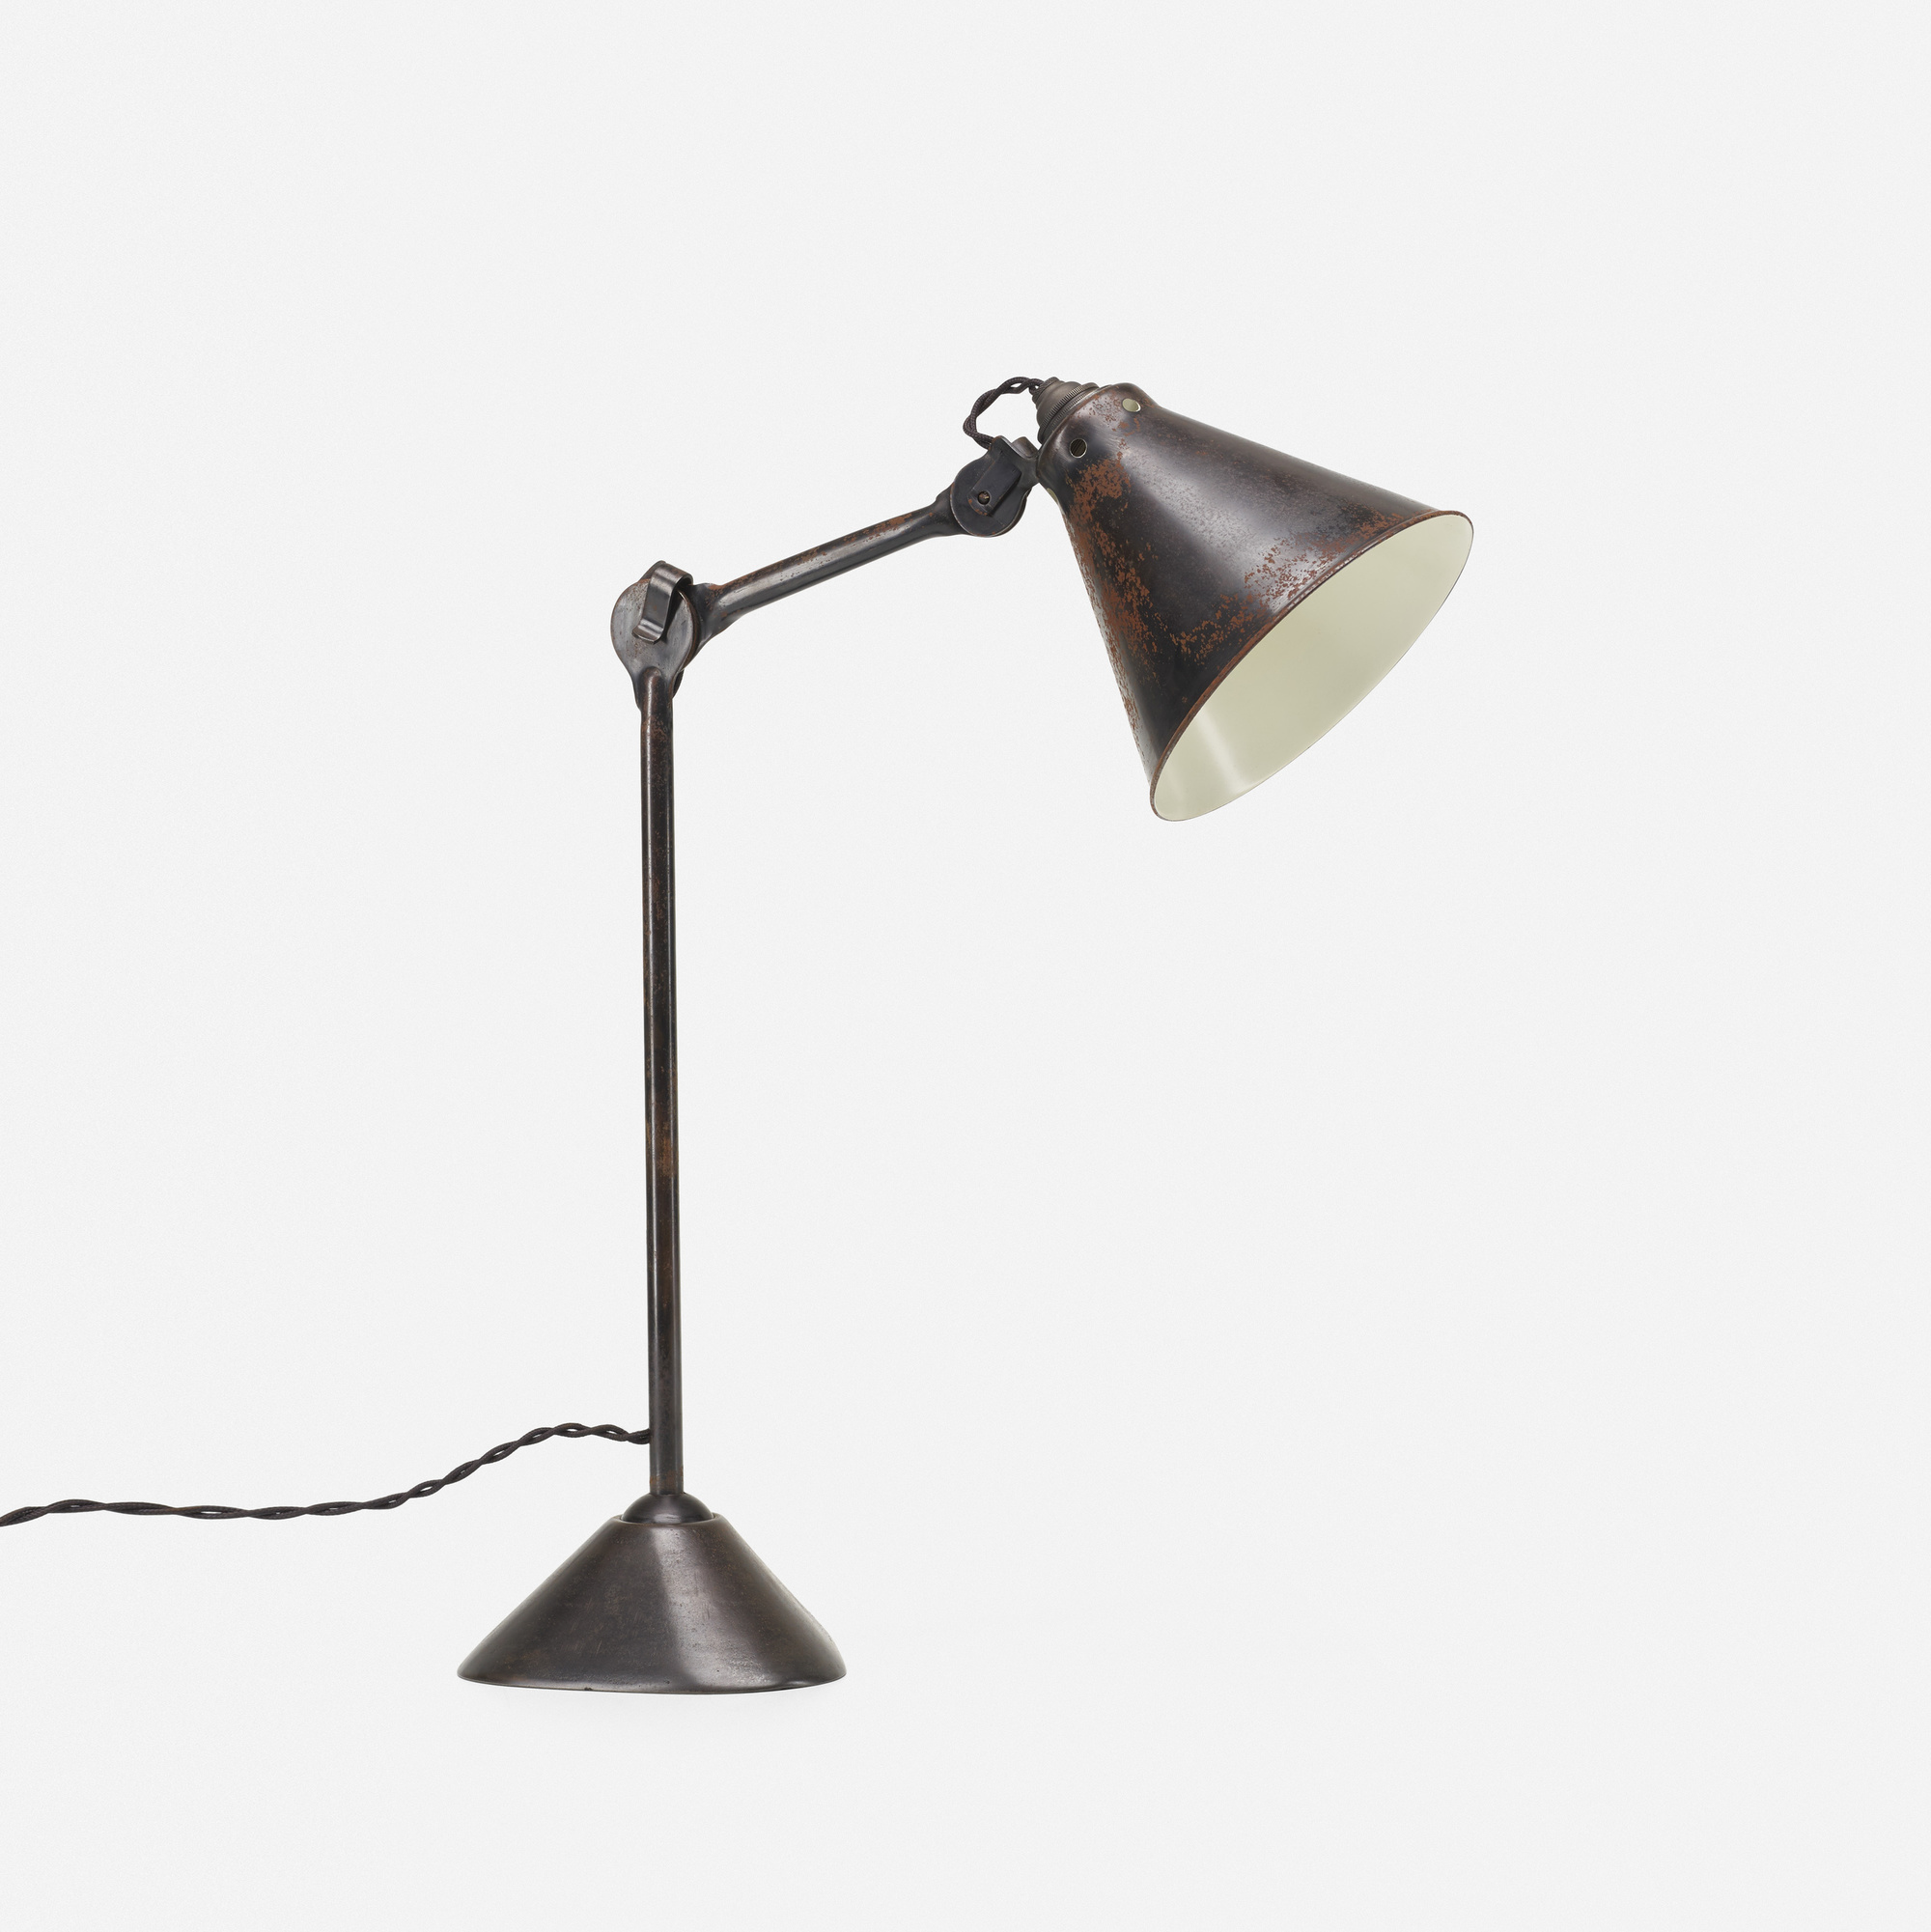 133: Bernard-Albin Gras / table lamp, model 205 (1 of 2)